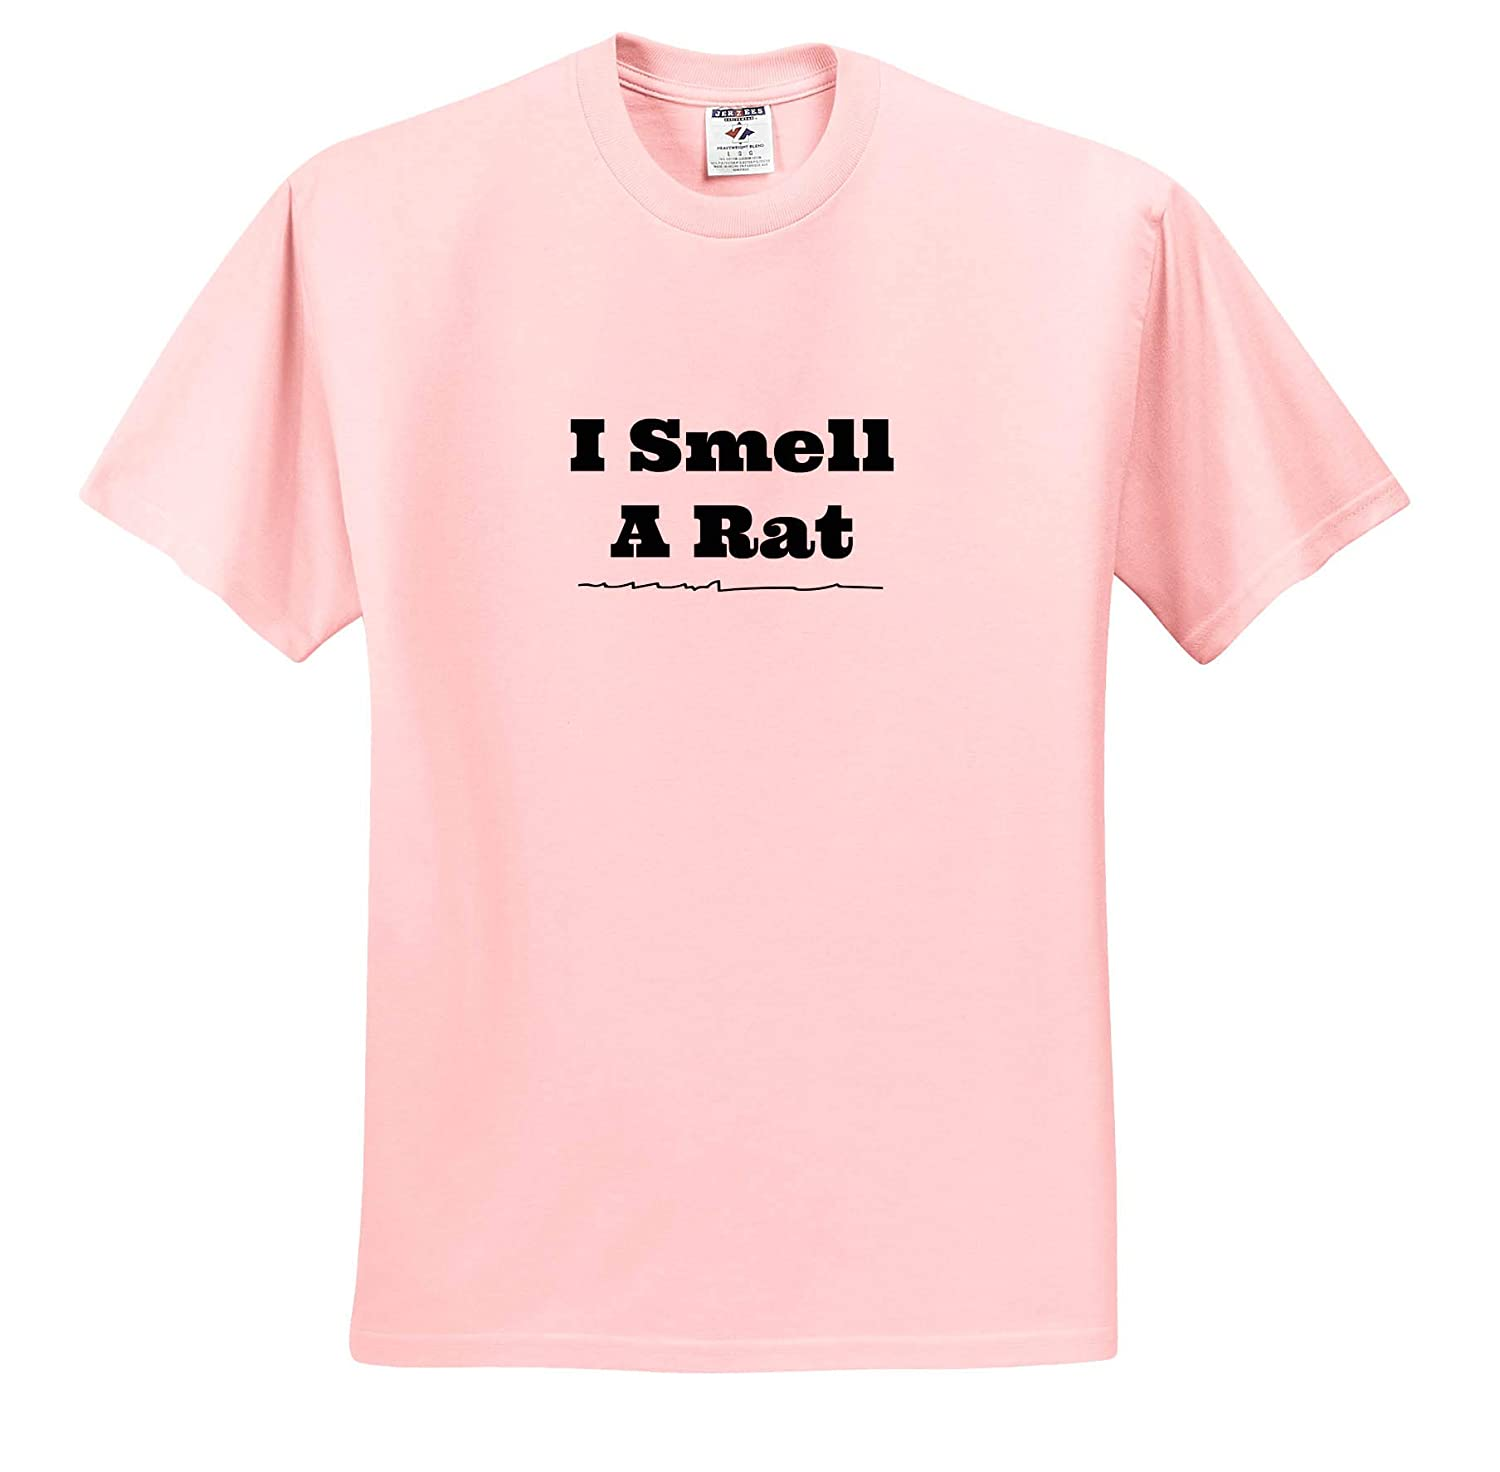 Adult T-Shirt XL ts/_315405 Image of I Smell A Rat 3dRose Carrie Merchant Quote